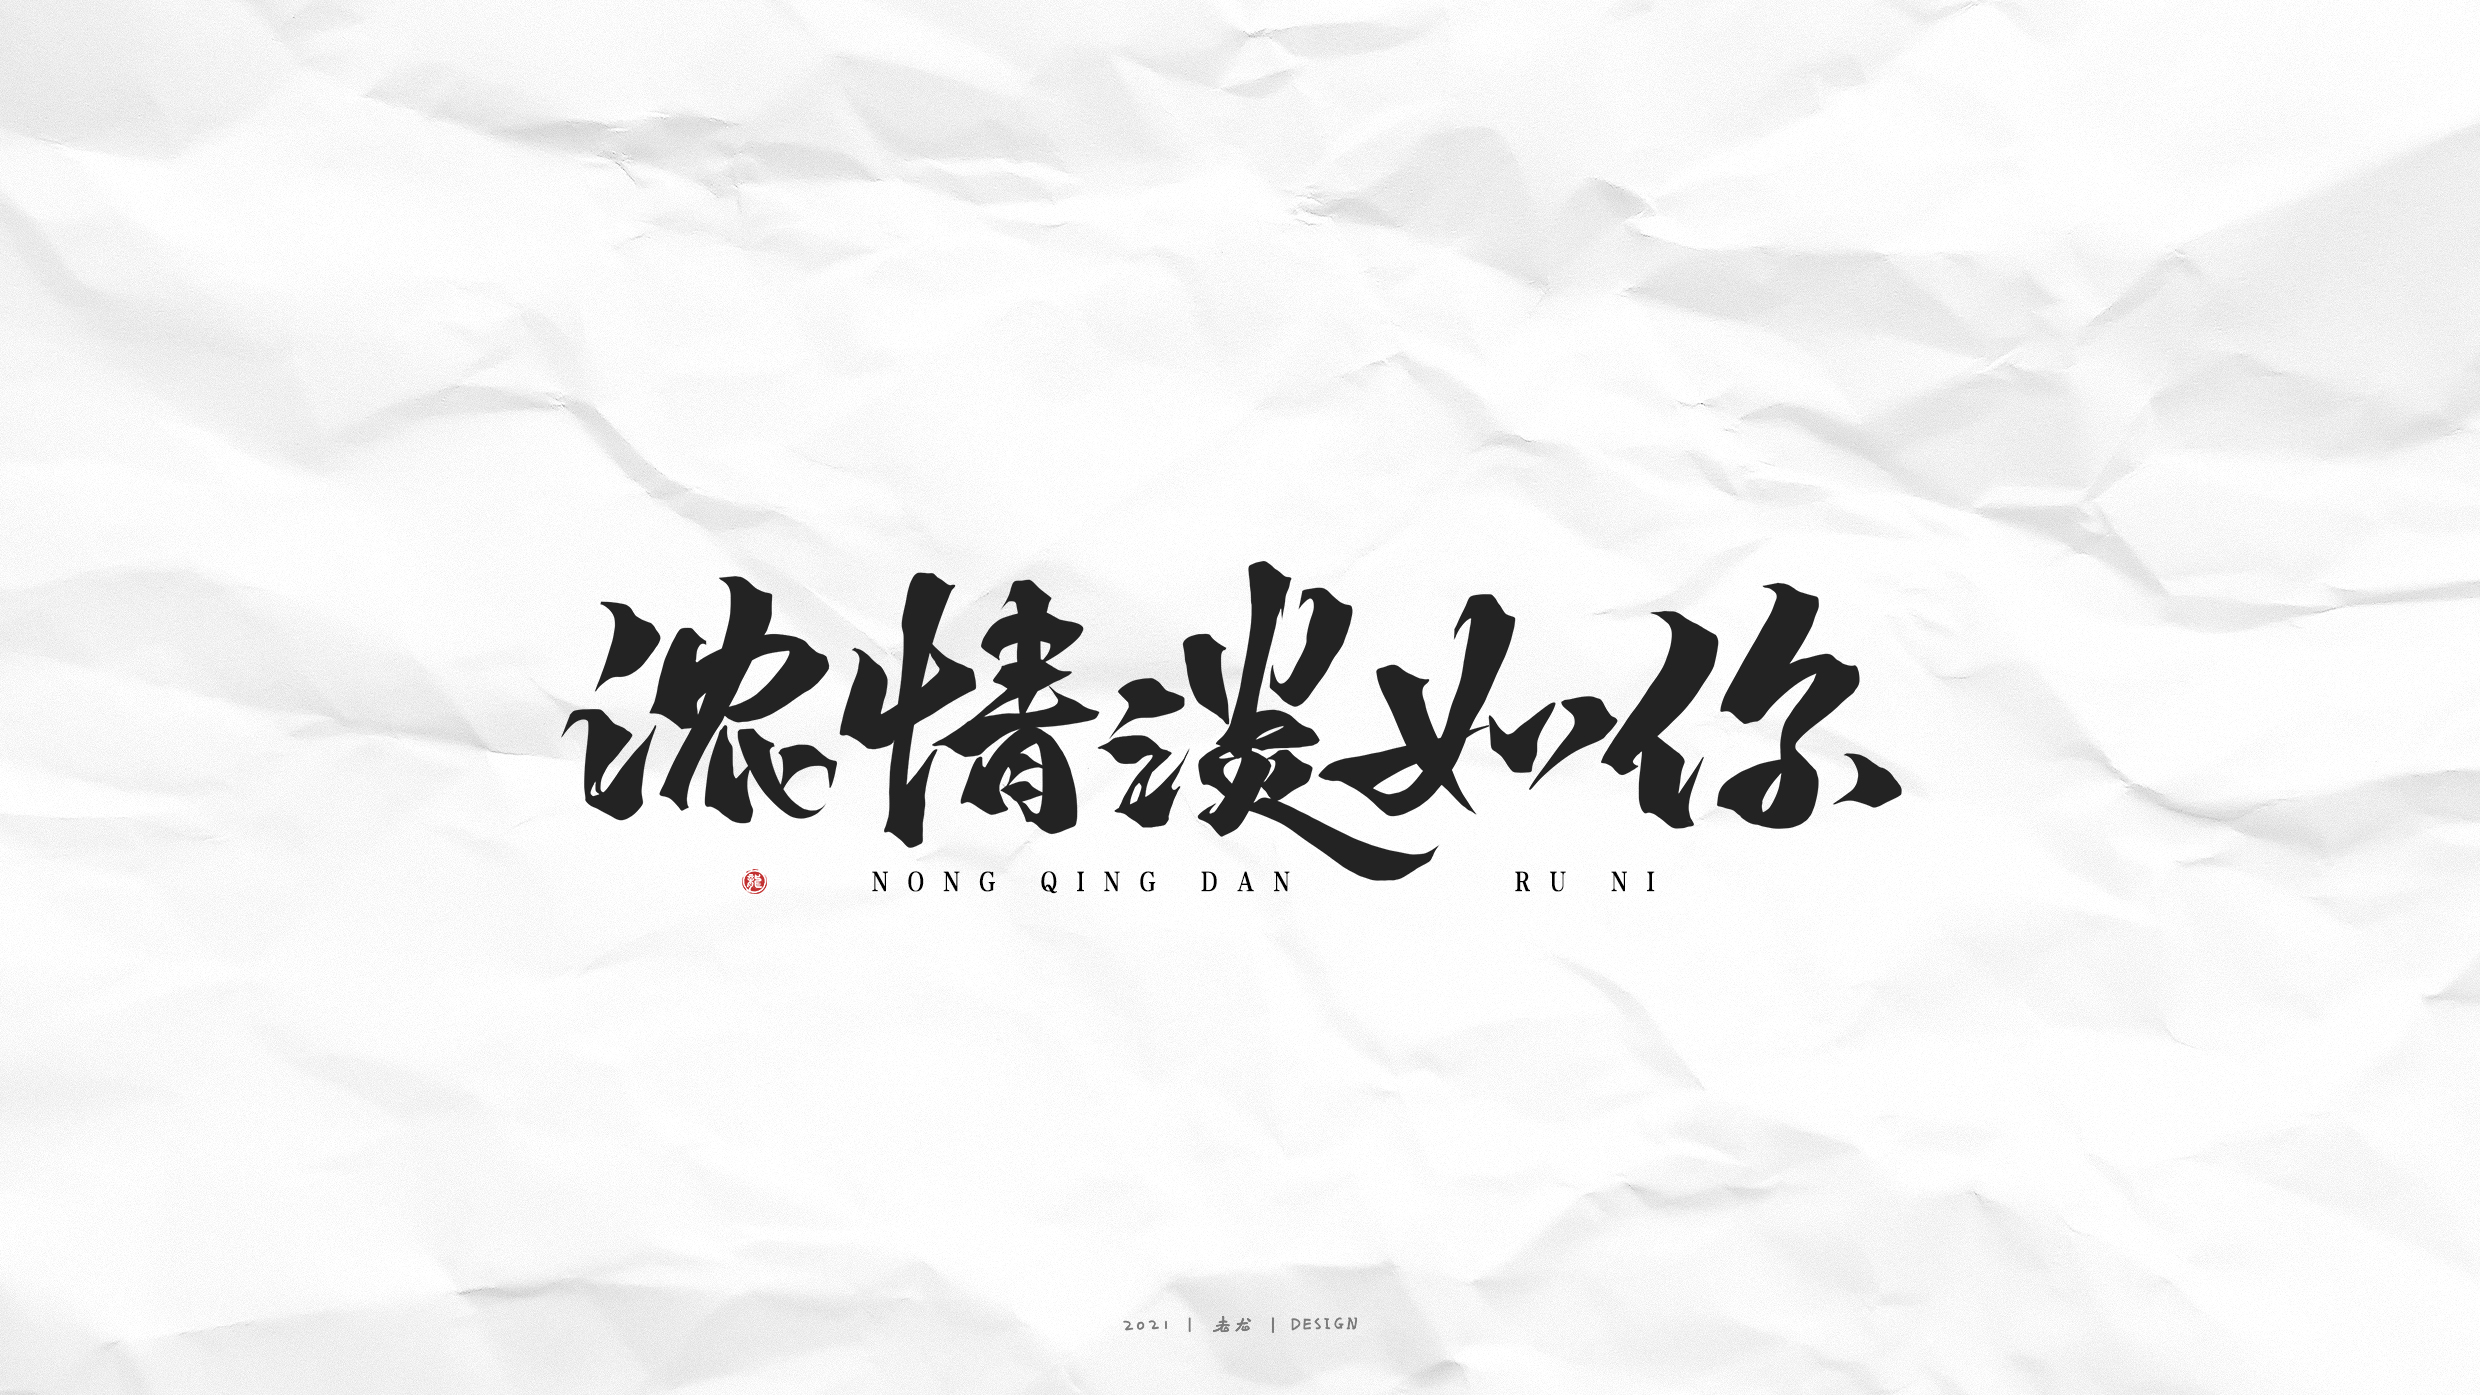 16P Collection of the latest Chinese font design schemes in 2021 #.113